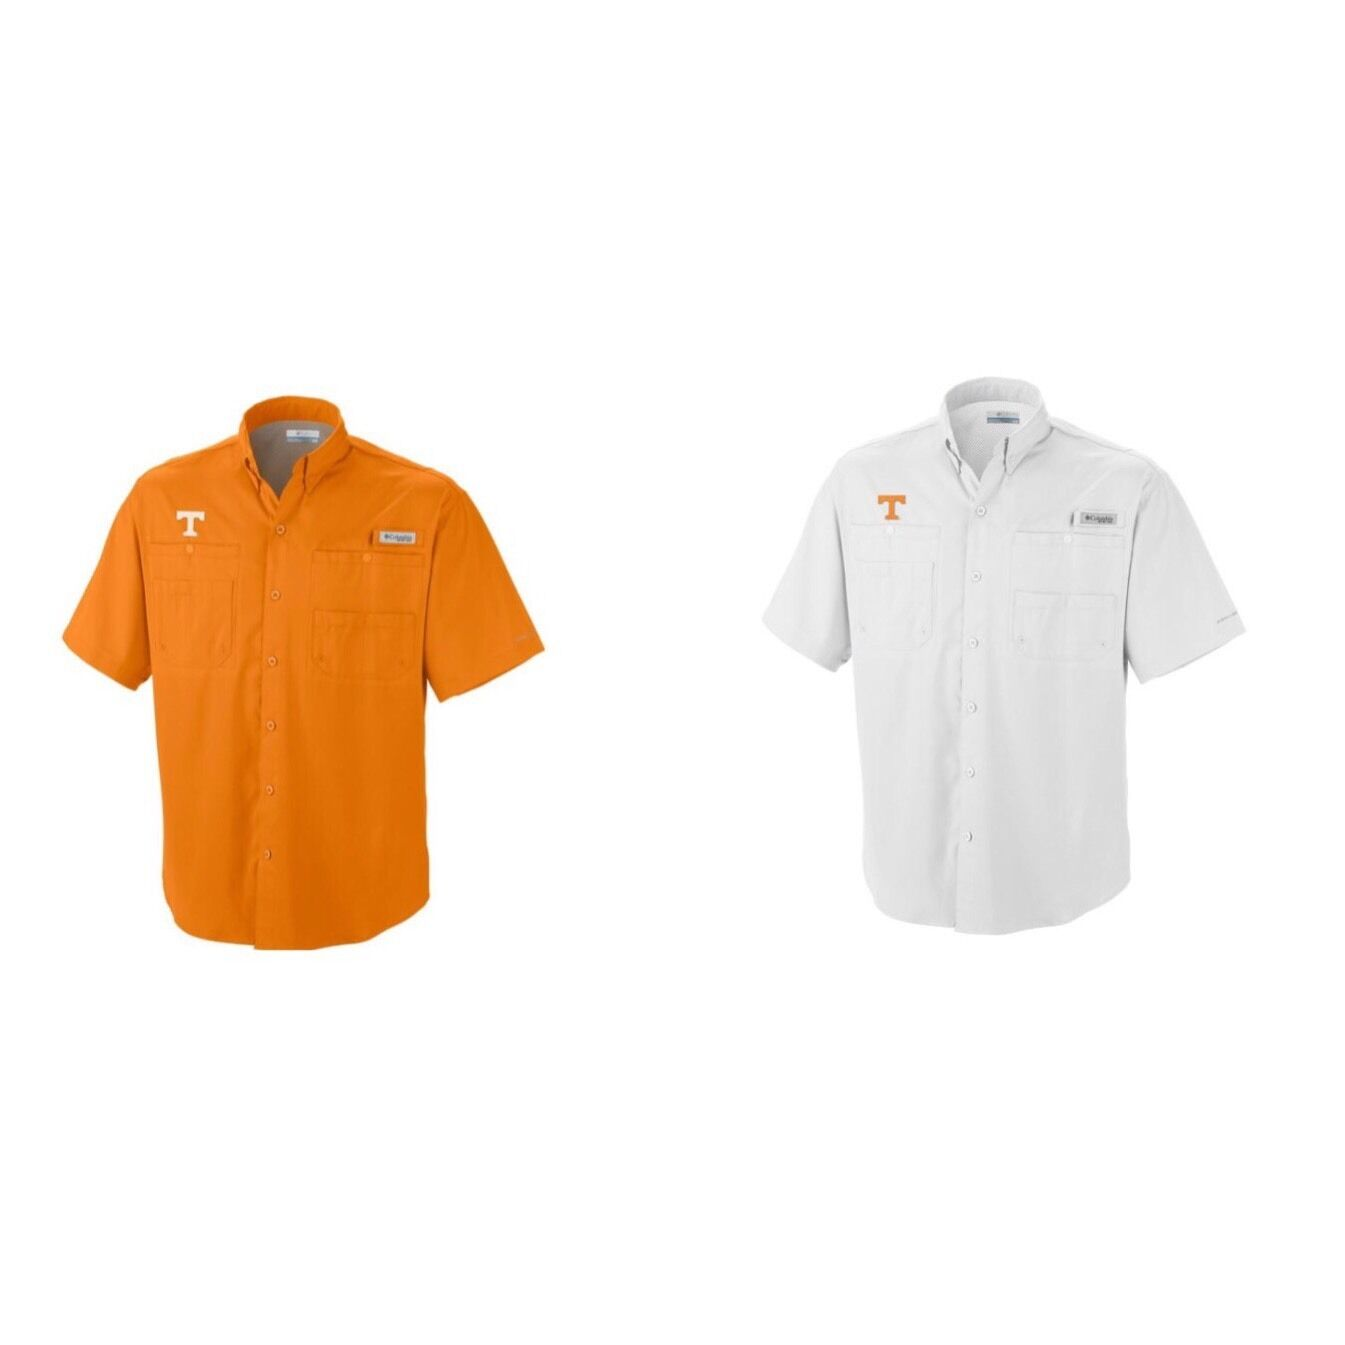 NWT Columbia  Men's Collegiate Tamiami Tennessee Vols SS Shirt Sz  S & M RP   55  all in high quality and low price